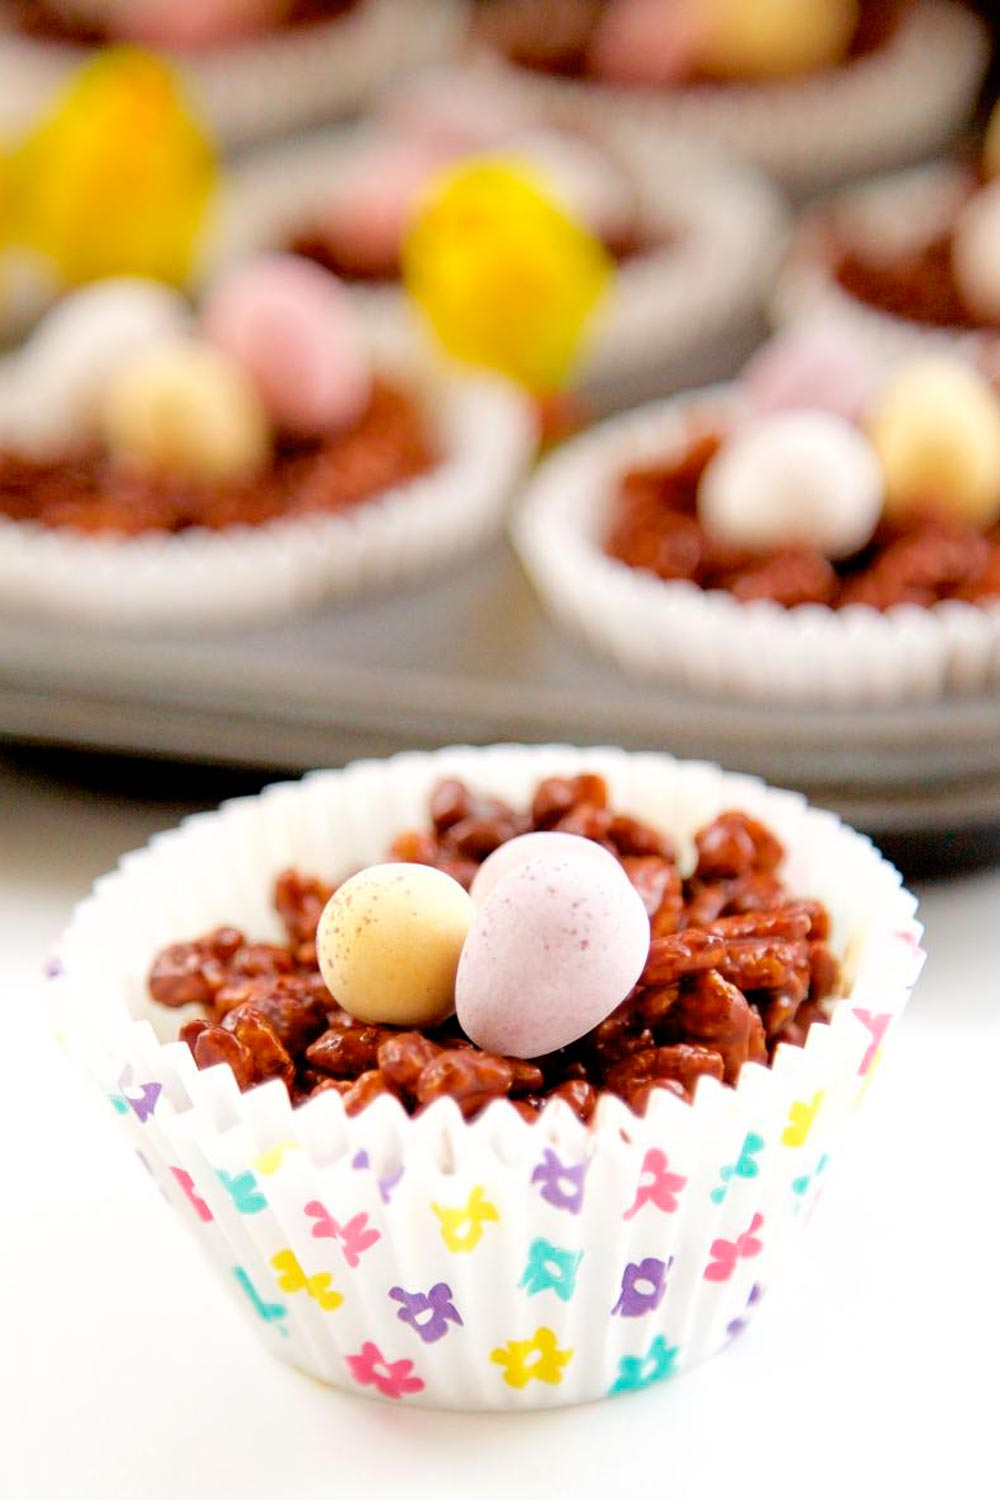 Chocolate Rice Krispies Cake in a spring muffin case, topped with mini eggs.